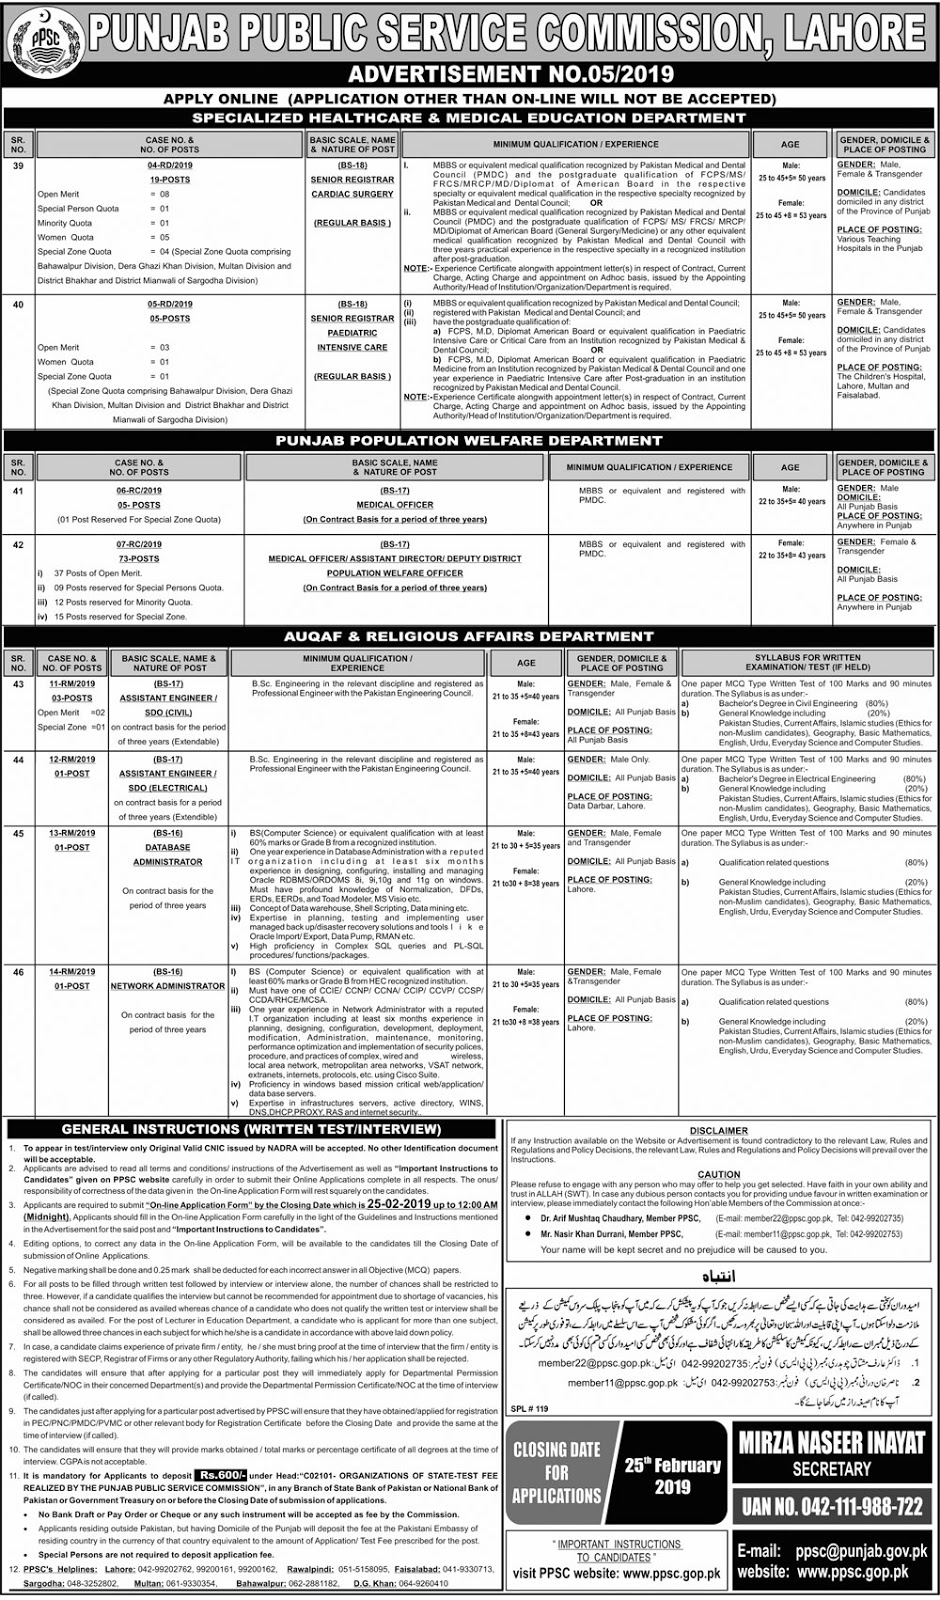 PPSC.gop.pk jobs 10 feb 2019, PPSC Jobs Advertisement No 05/2019, PPSC Jobs Advt 05 | Punjab Public Service Commission 10 Feb 2019